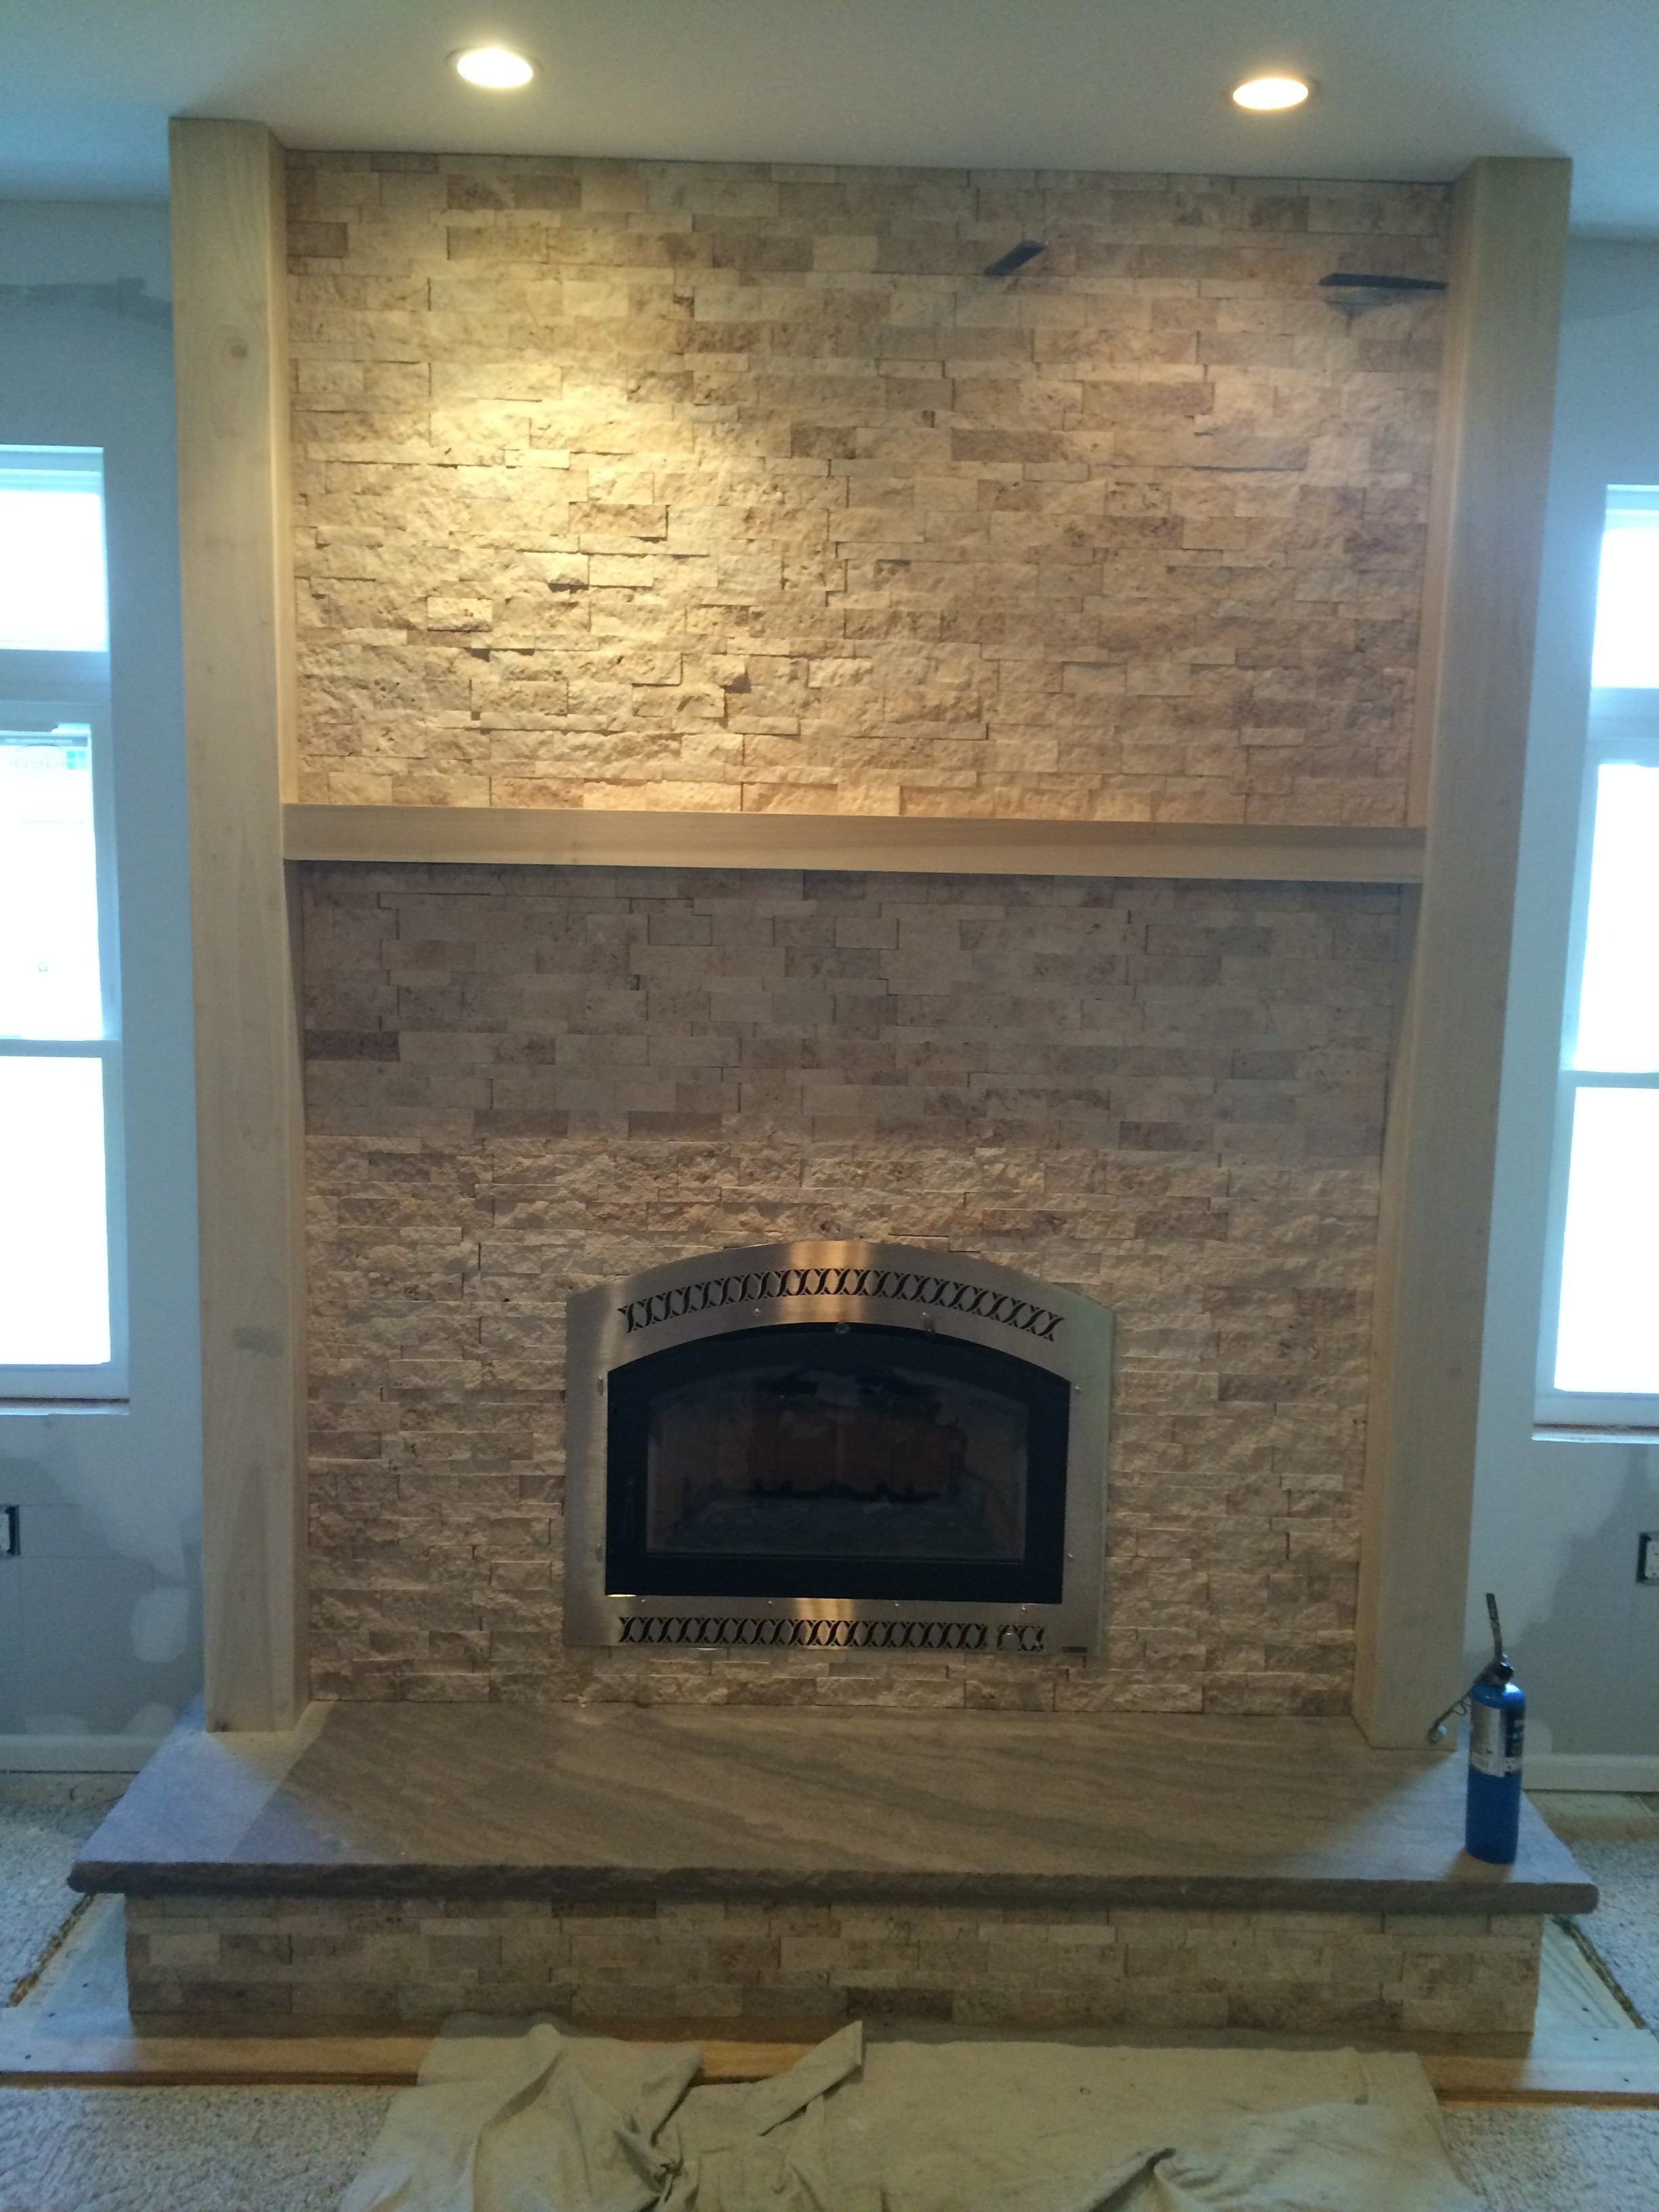 Bowden's Fireside recently visited a home in Allentown, NJ and turned a prefabricated fireplace into a high-efficiency wood-burning fireplace.